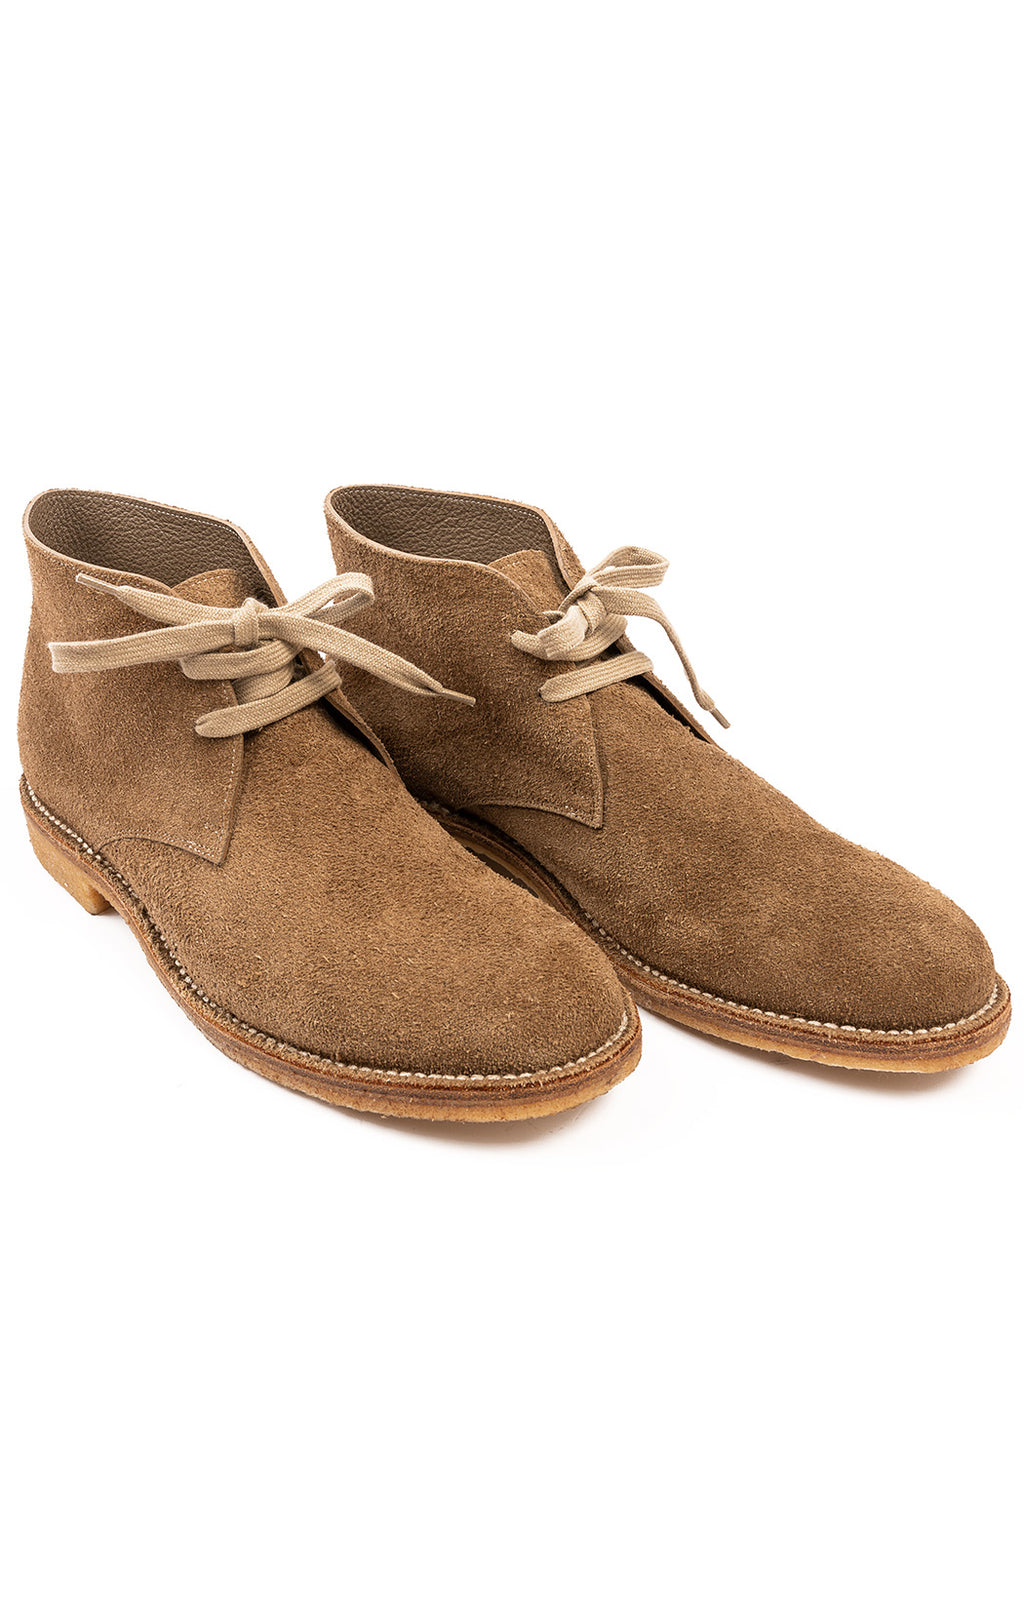 "Brown suede lace up boot ""Wallabee"" style shoe with rubber sole"